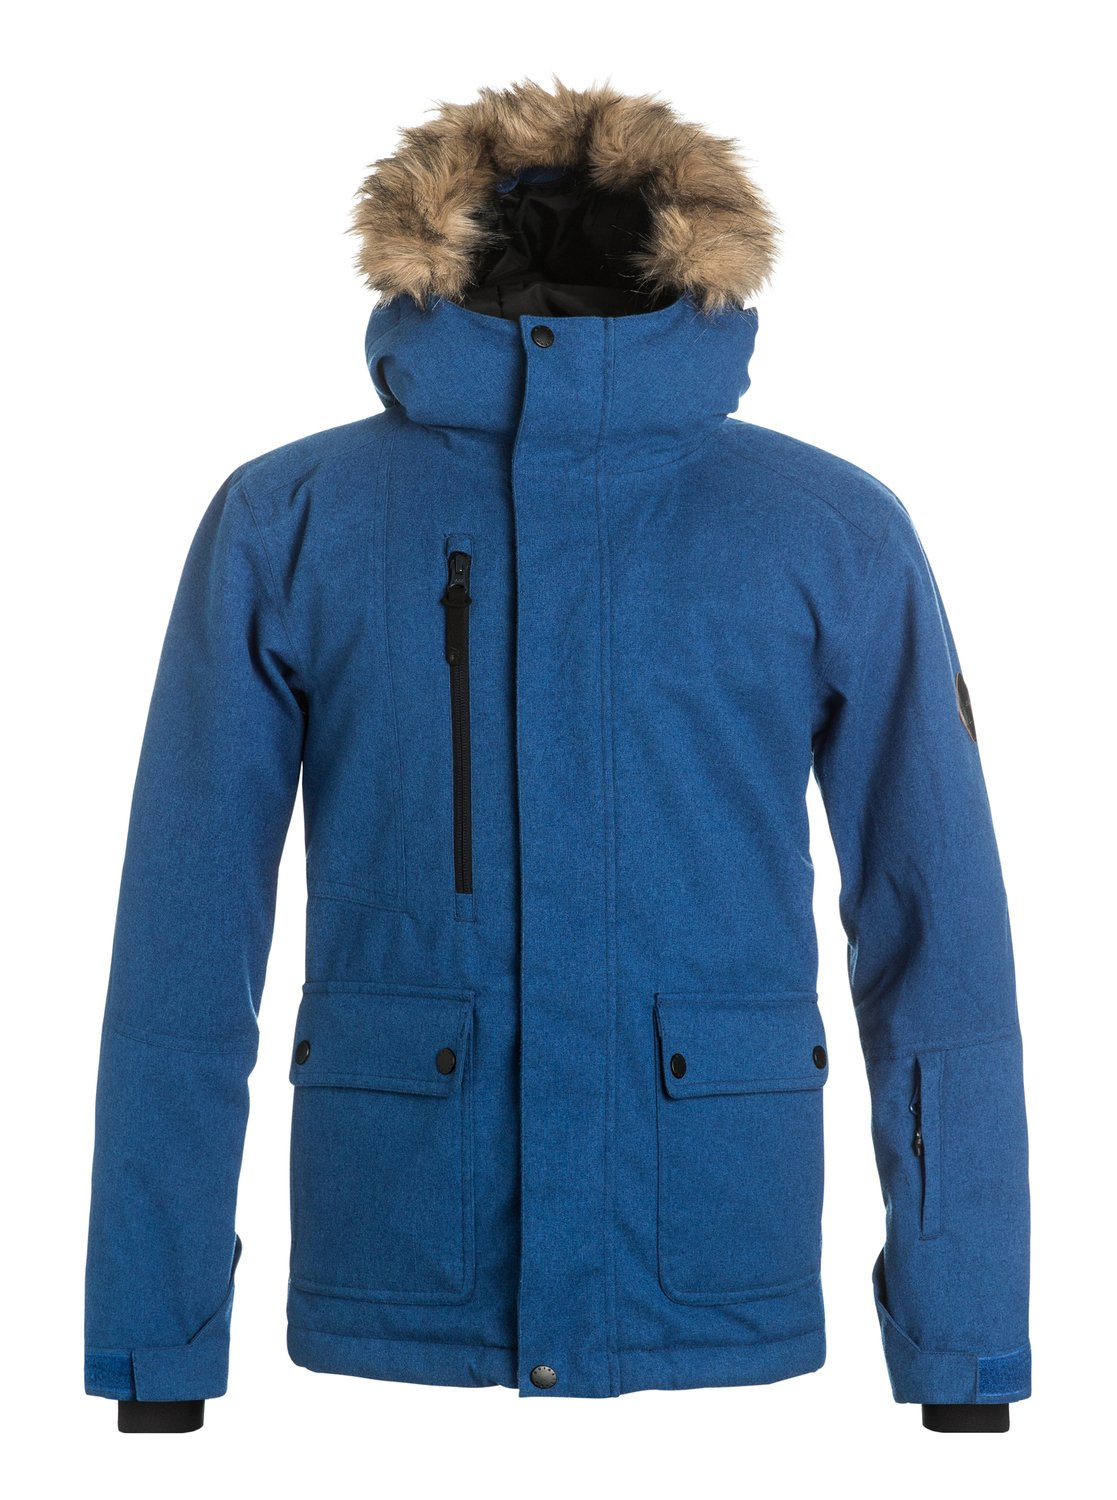 Сноубордическая куртка SelectorThe parka-inspired Selector snow jacket for boys blends street style with mountain-ready tech. 10K Quiksilver DryFlight® technology for reliable waterproof and breathable protection, an easy-to-wear regular fit allows space to layer and Warmflight® insulation level 3 with a sherpa, chambray and lightweight breathable taffeta lining keeps it cosy on the coldest winter days<br>